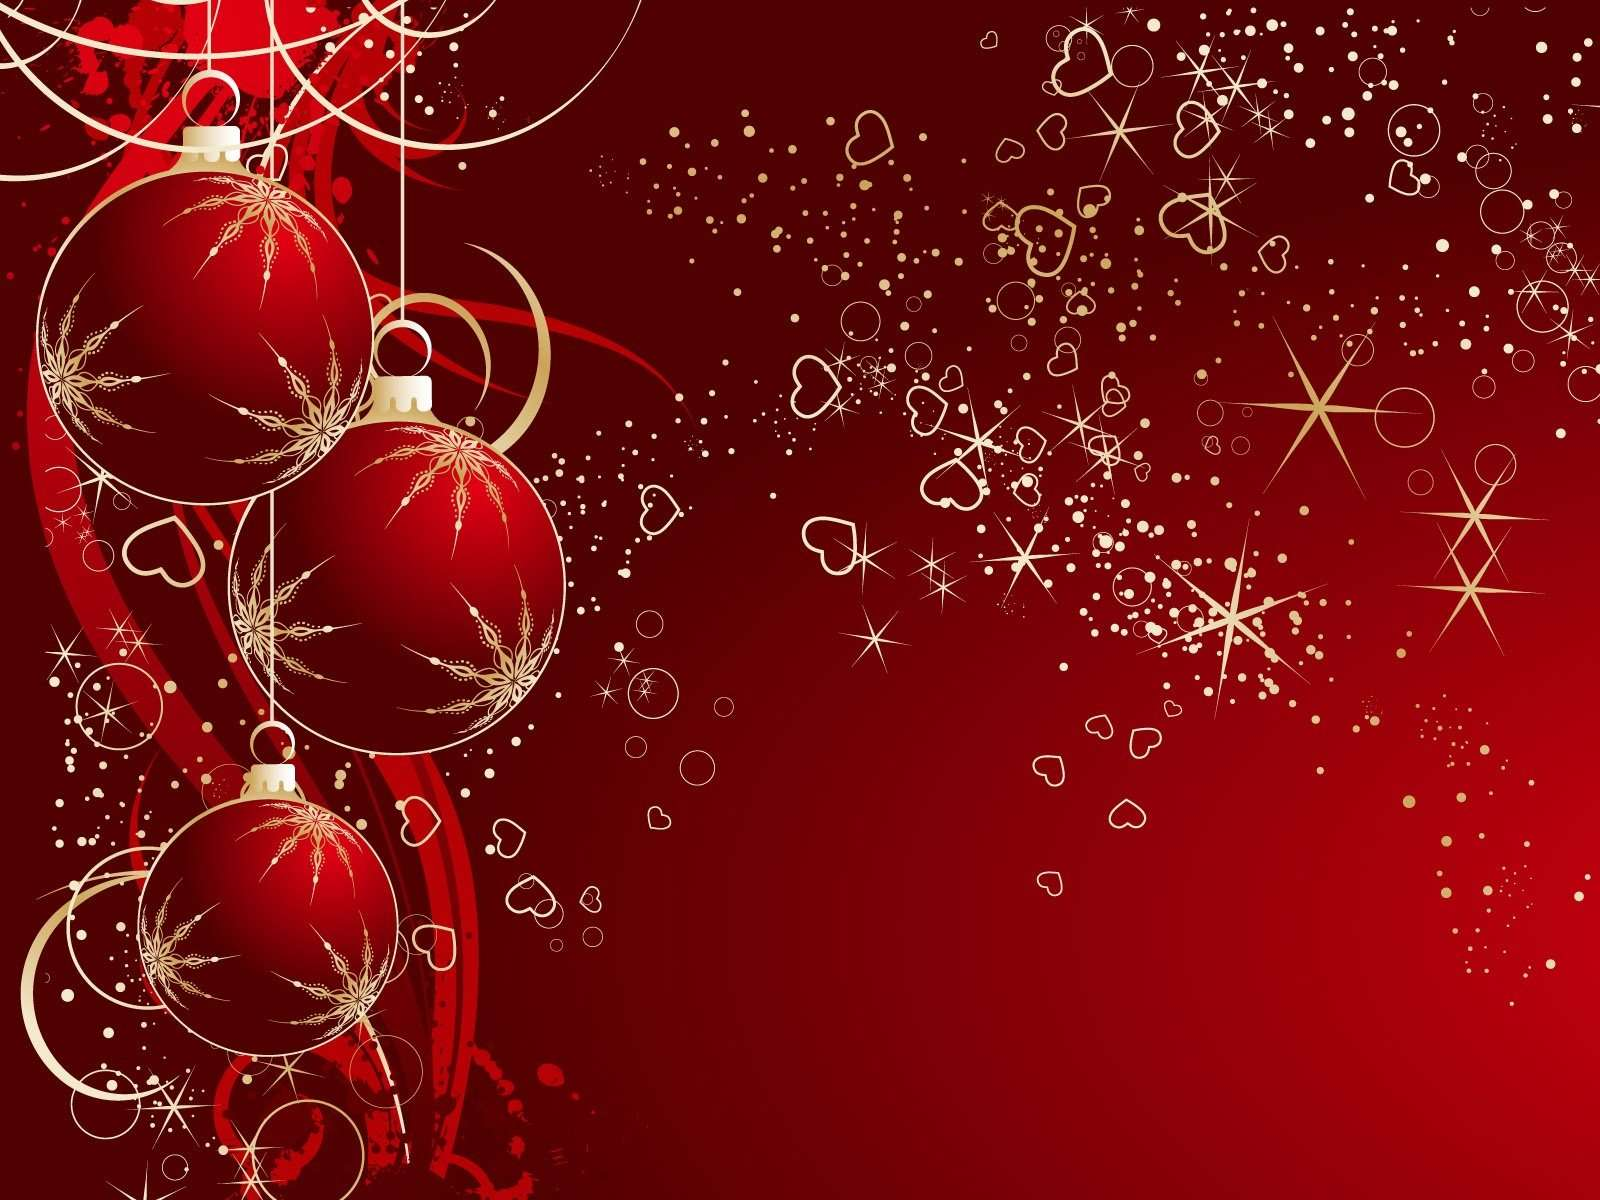 Christmas Winter Wallpaper 009